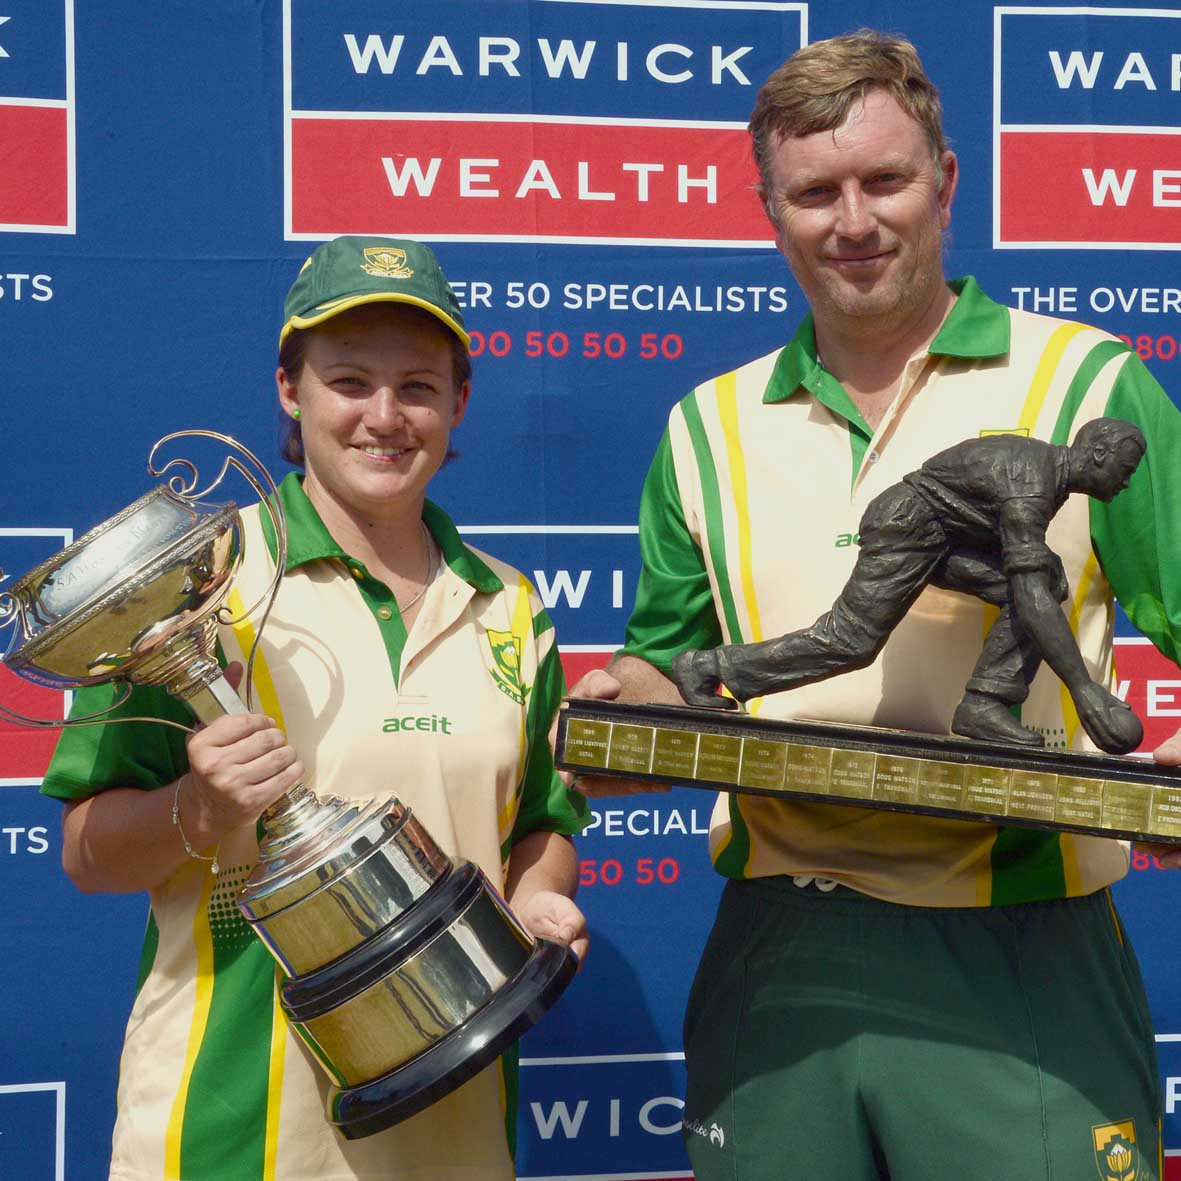 She's young but 'old hand' Botha is gunning for medals